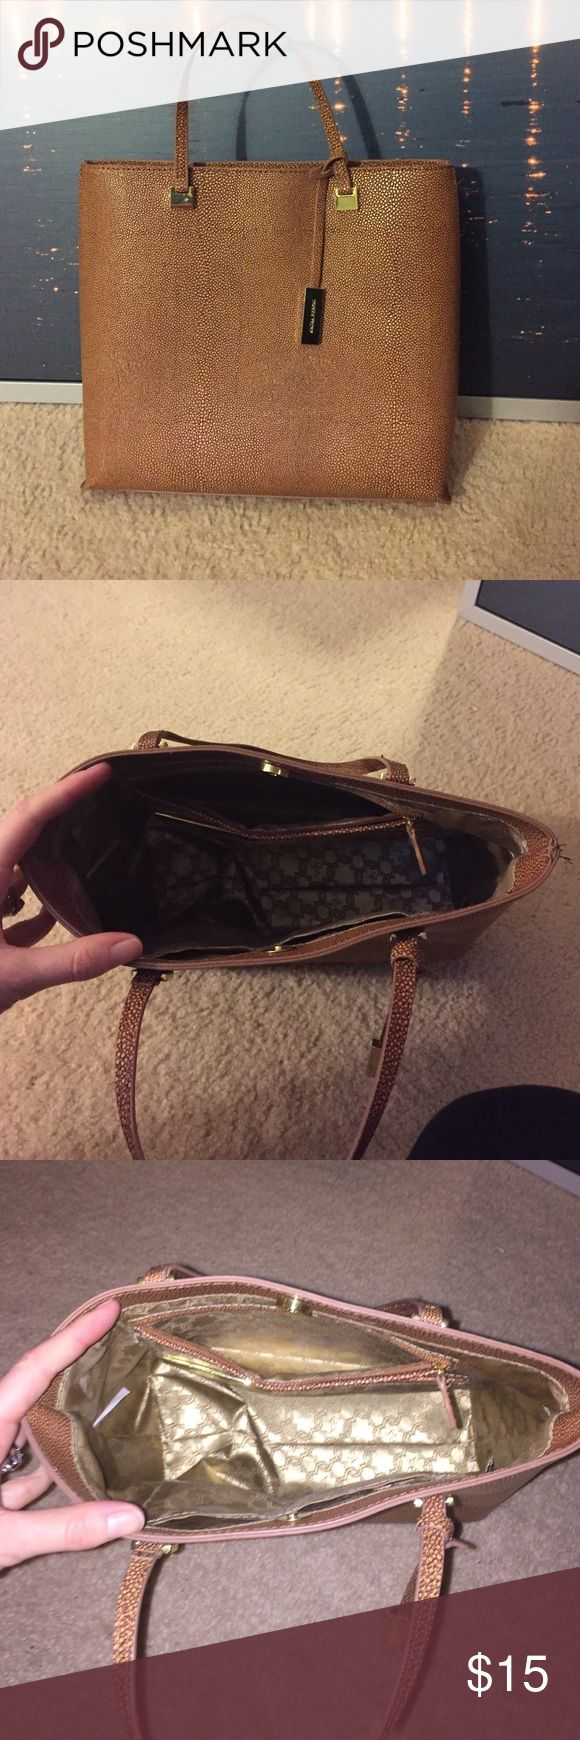 Ivanka Trump Camel Bag Ivanka Trump Camel Bag with satin interior. Sturdy structure. Two thin handles and snap closer. Interior zipper pocket. Ivanka Trump Bags Totes